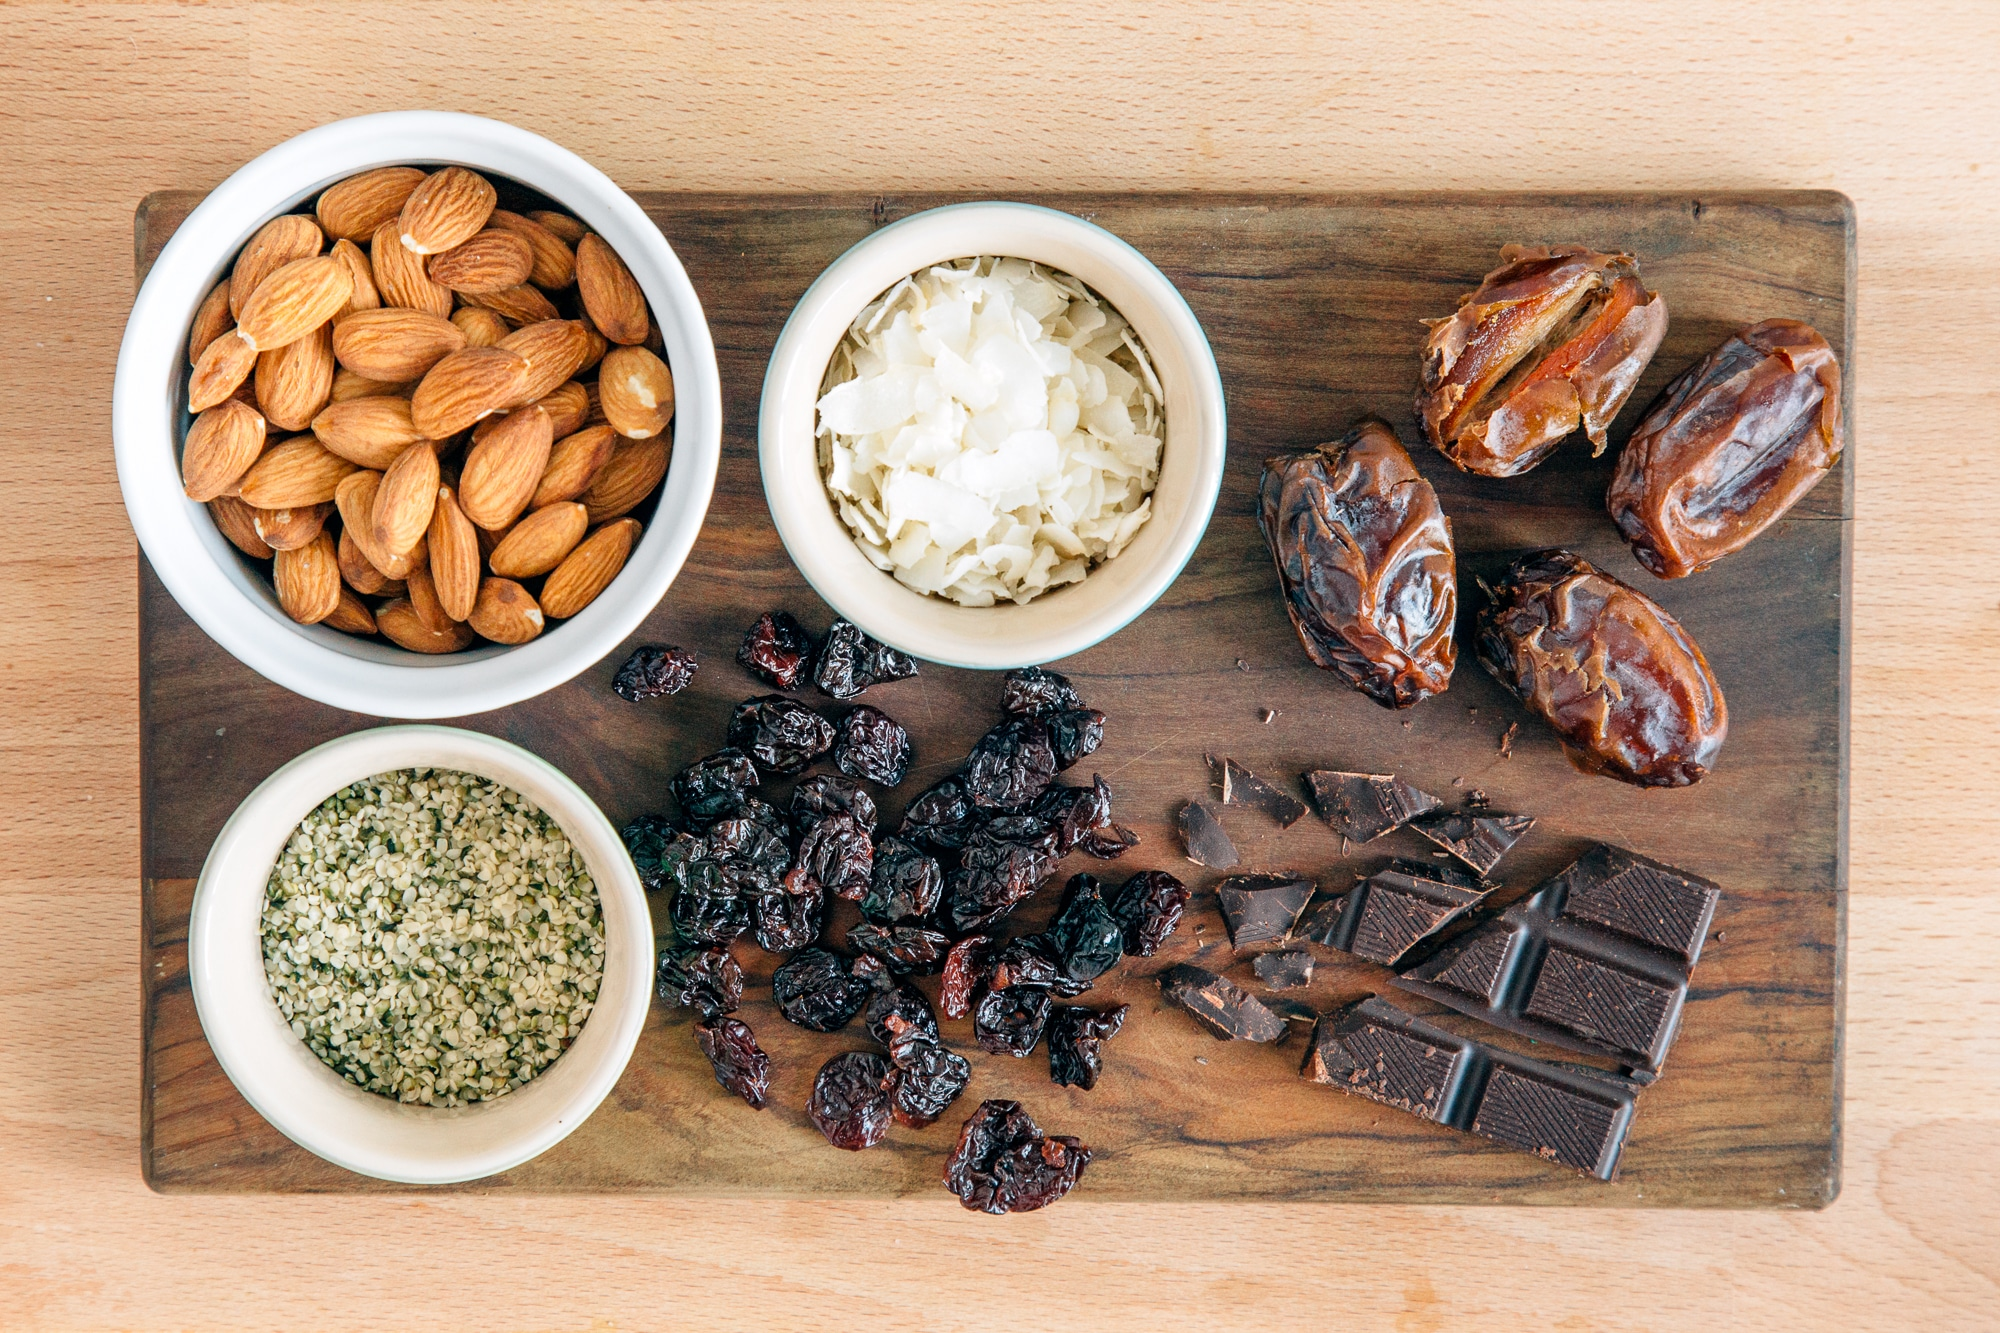 Ingredients for chocolate cherry energy balls on a wooden surface